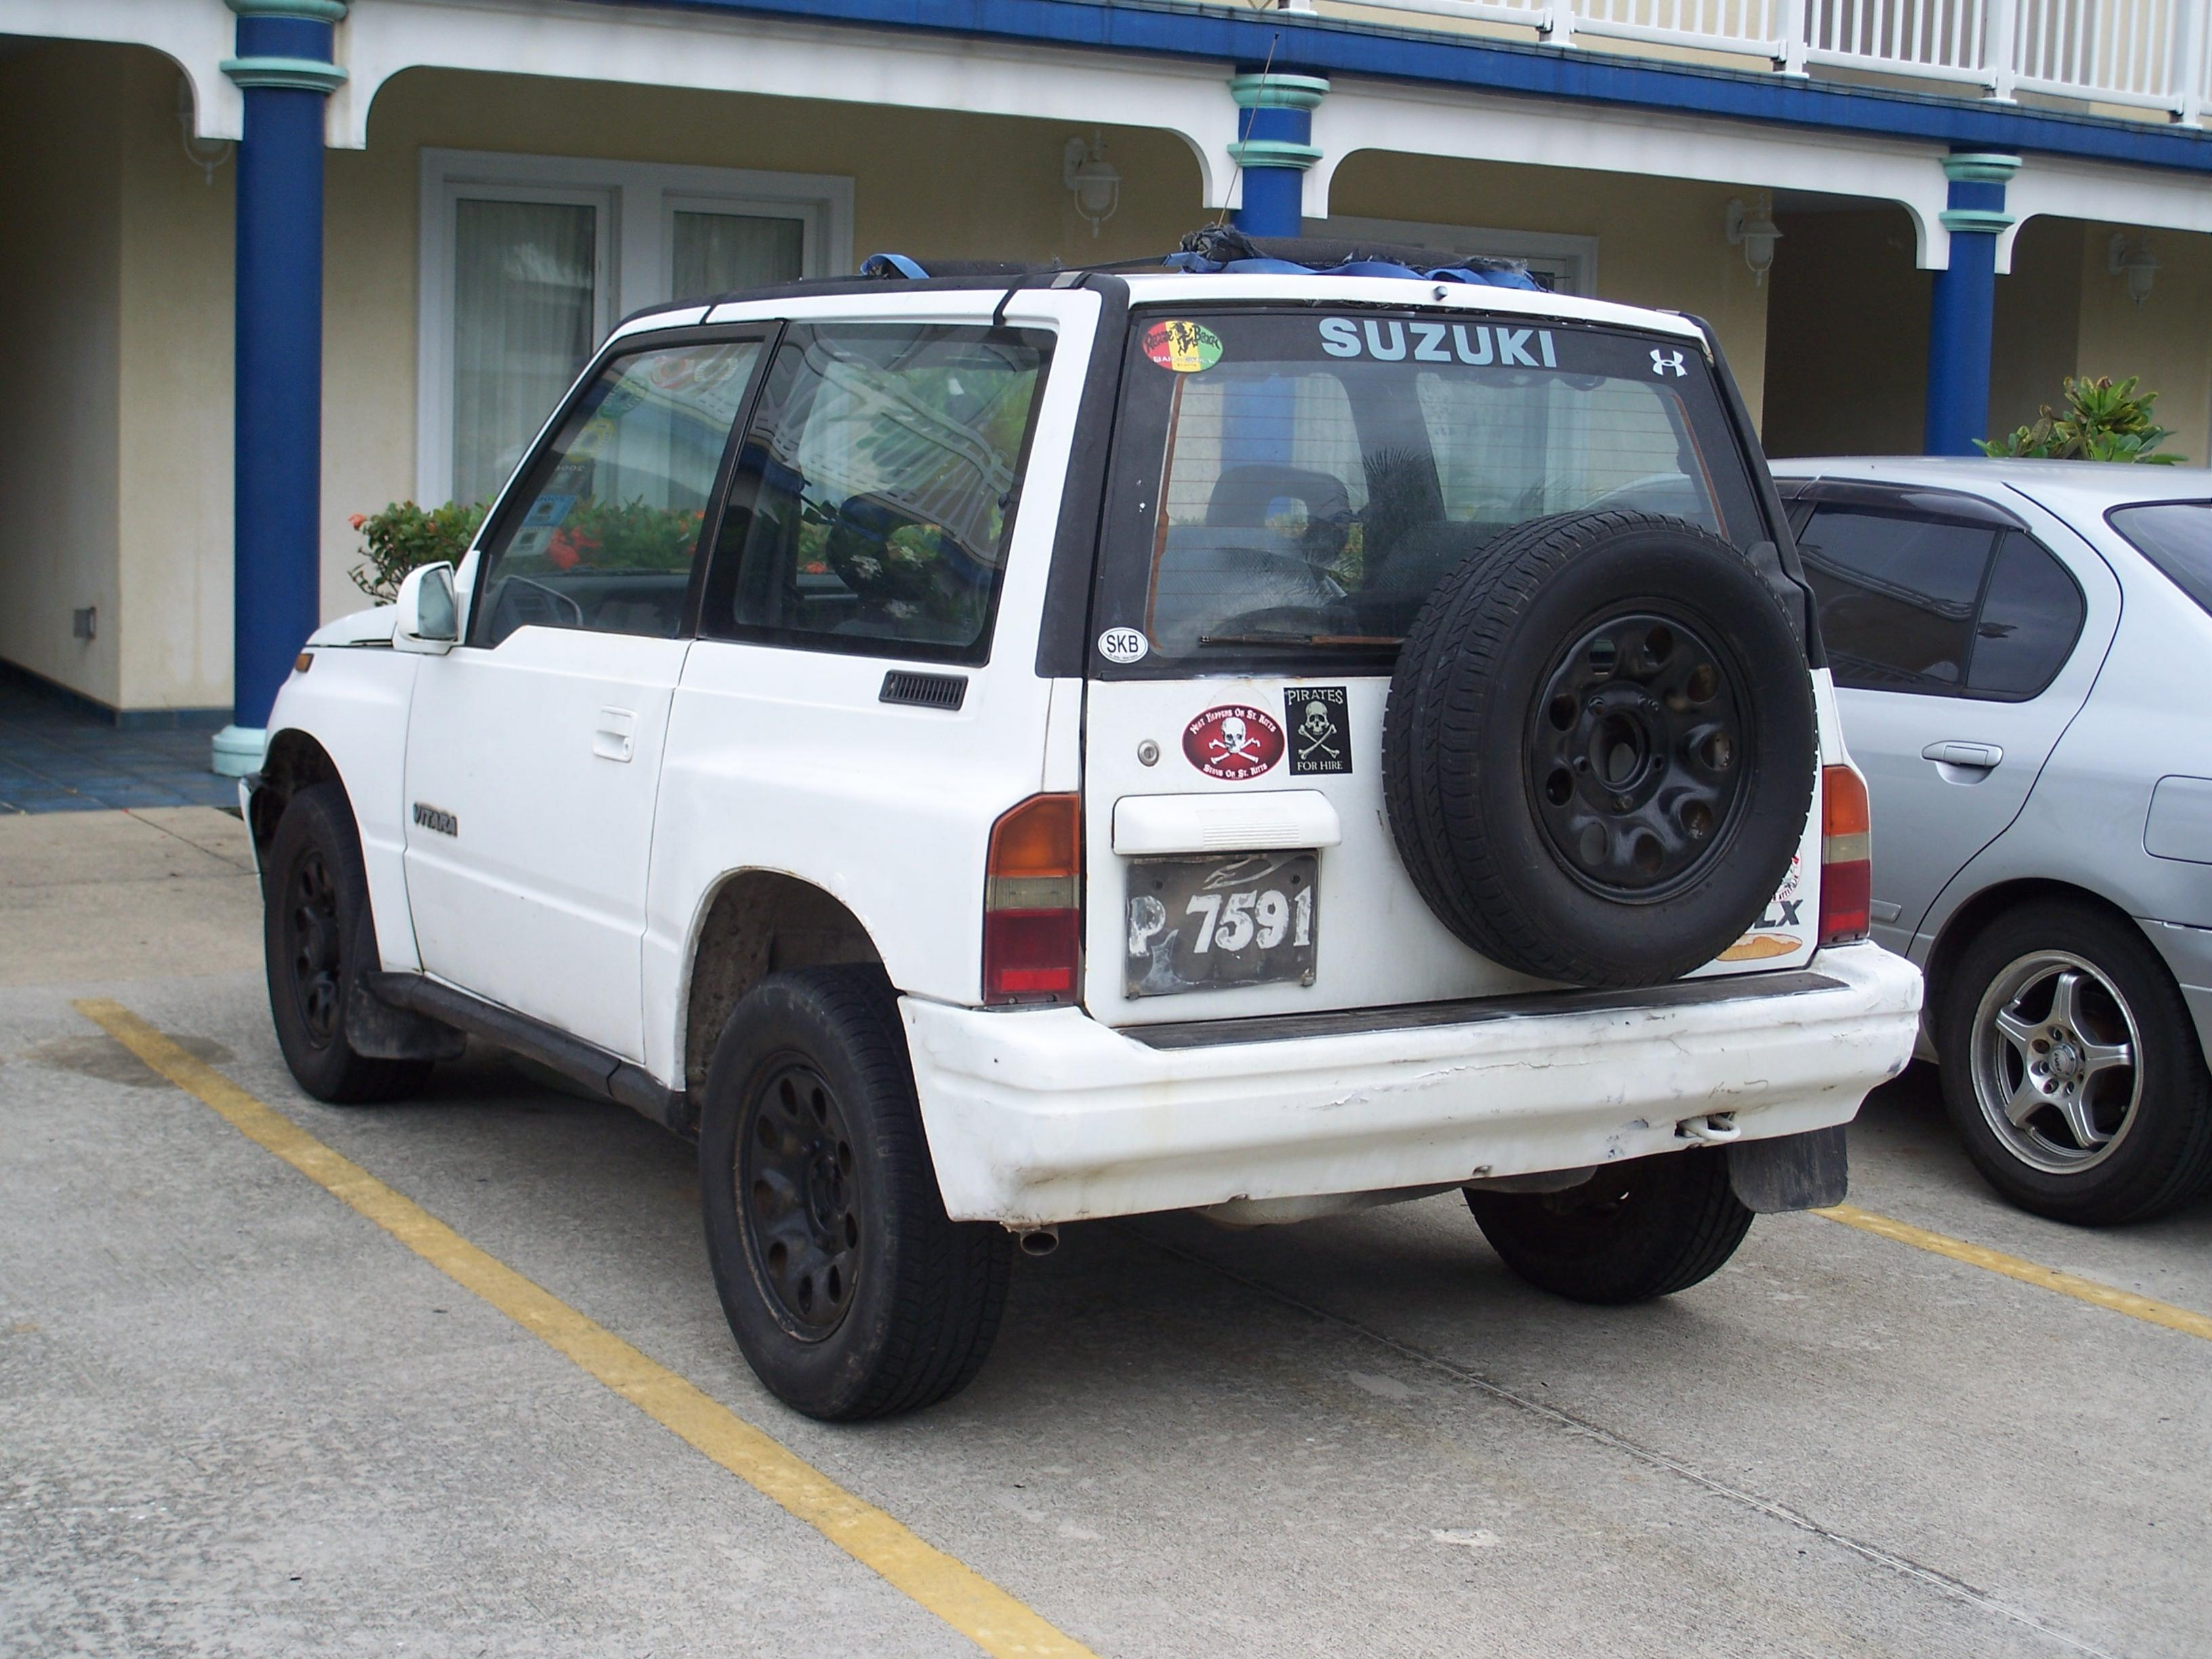 1992 suzuki vitara suv 4x4 for sale price drop mua nevis medical school classifieds. Black Bedroom Furniture Sets. Home Design Ideas